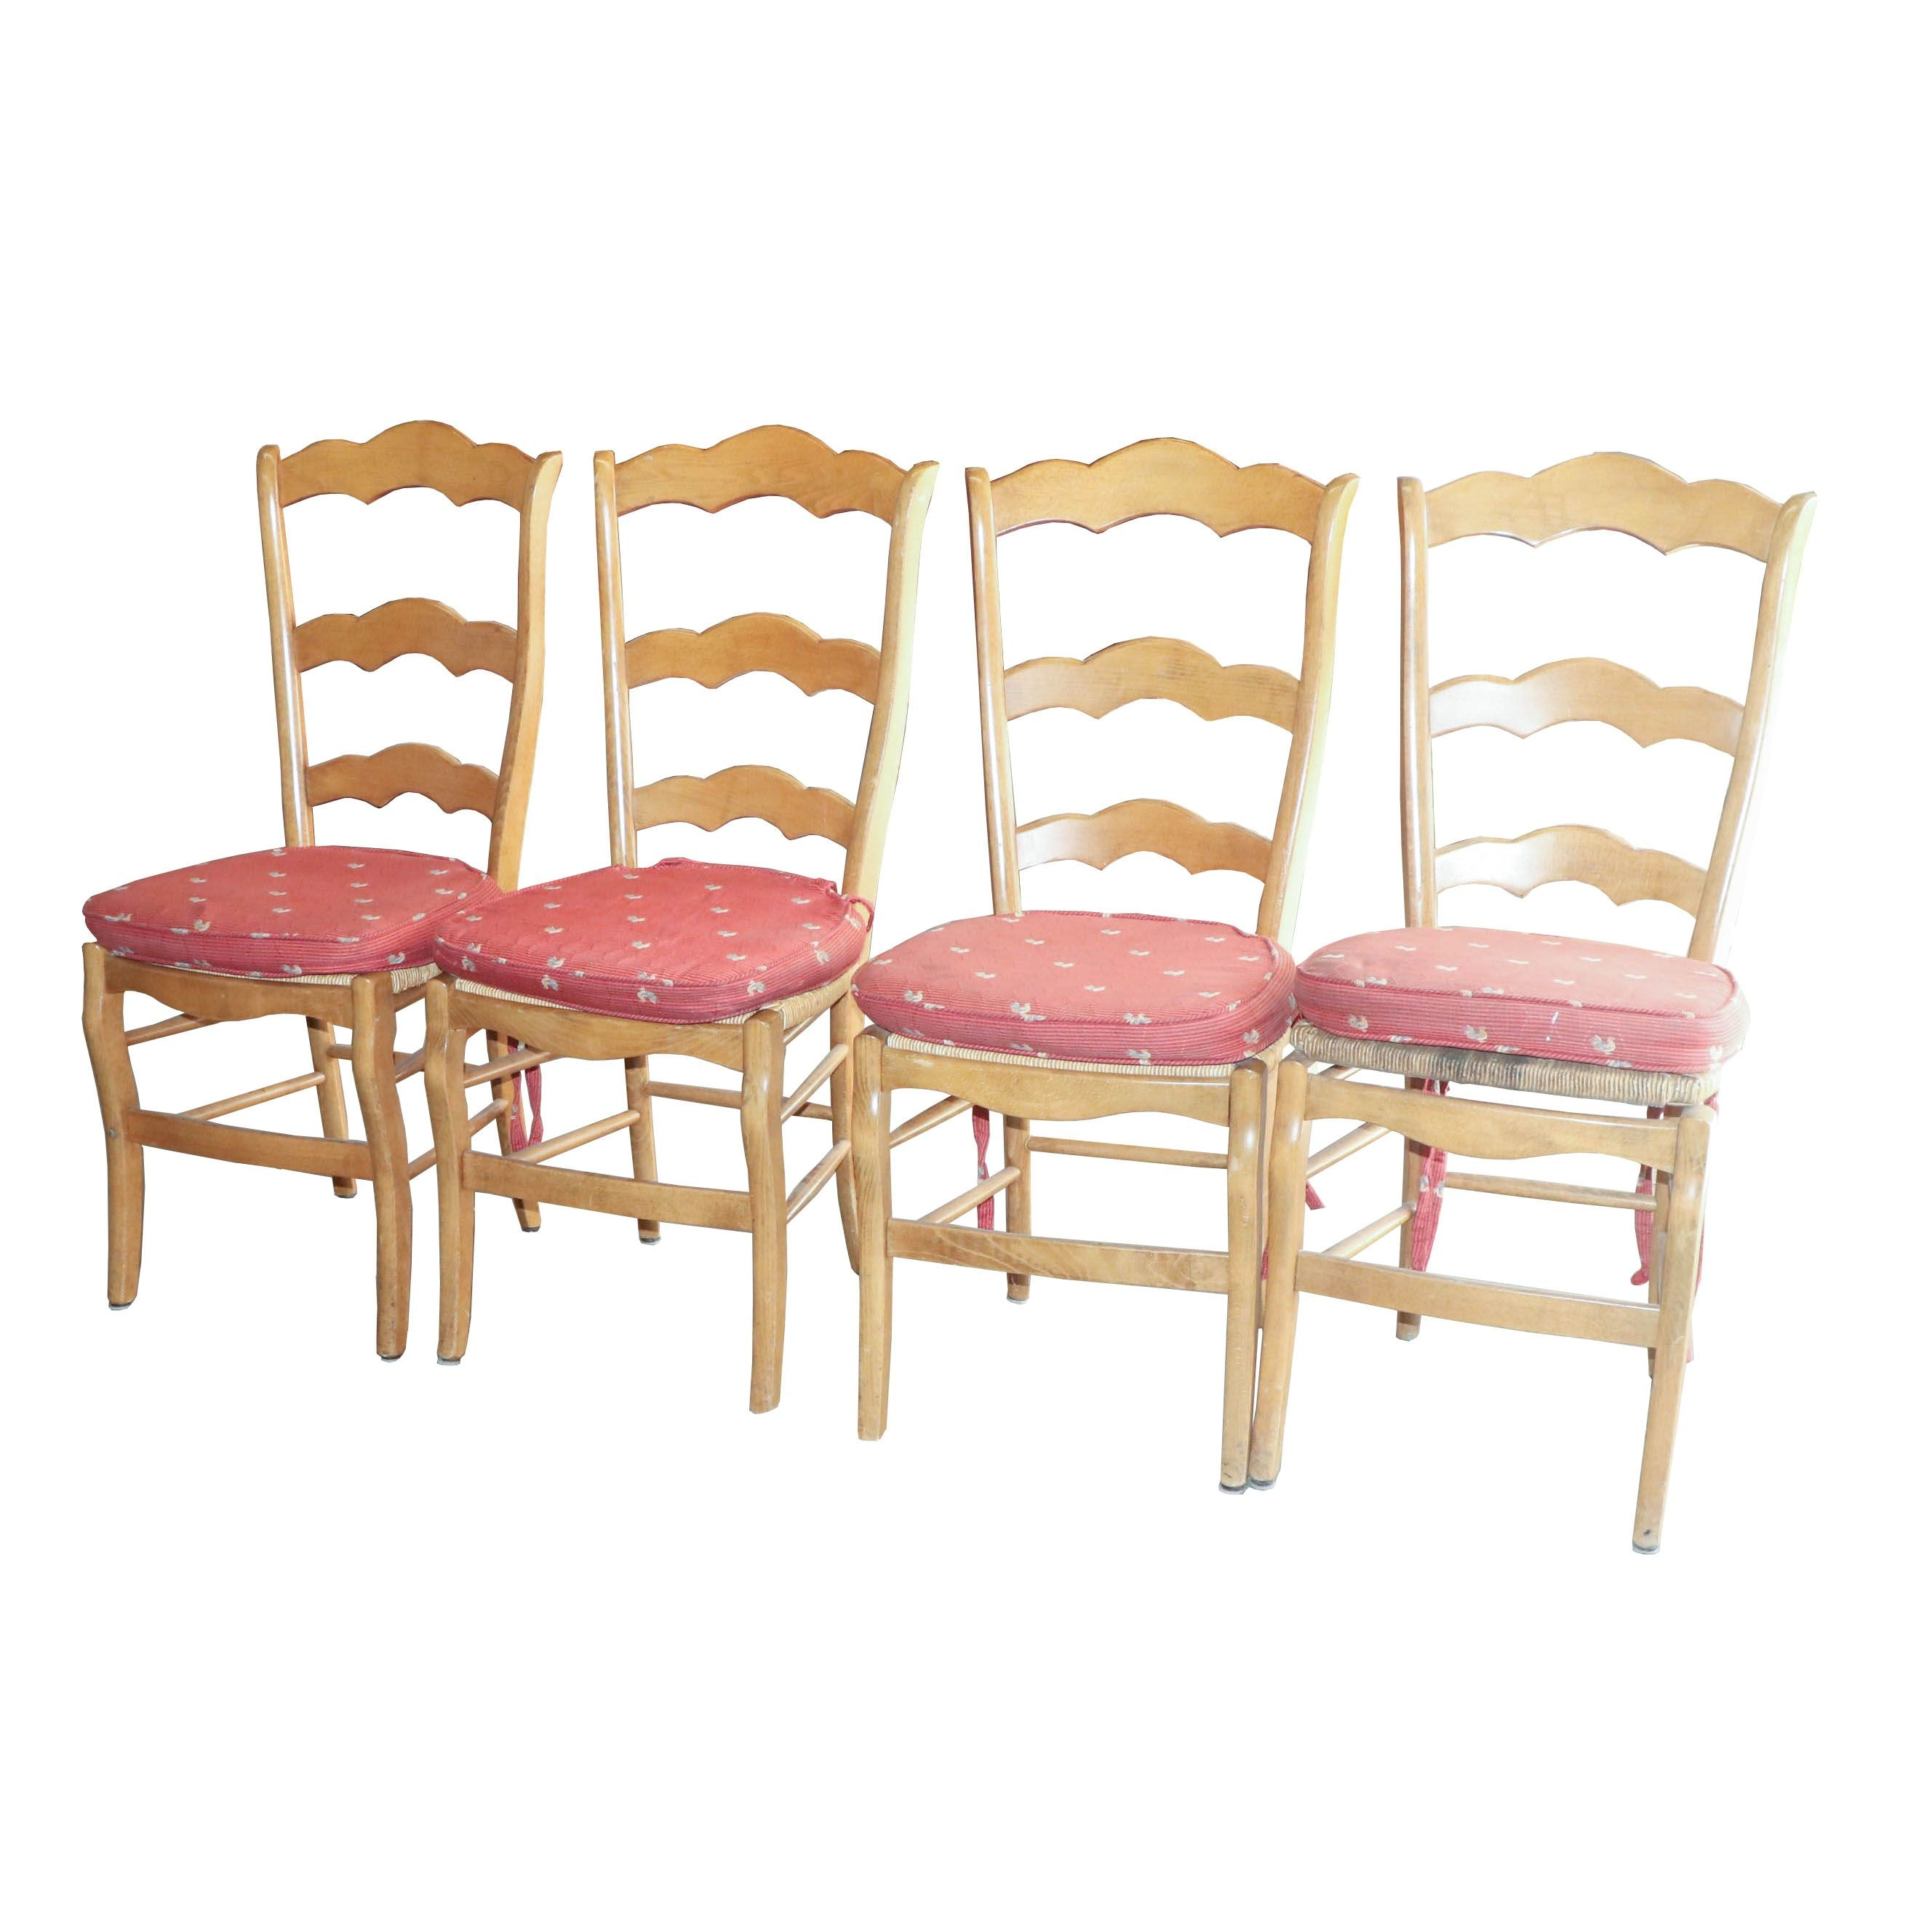 Four Ladder Back Chairs with Rush Seats, 20th Century